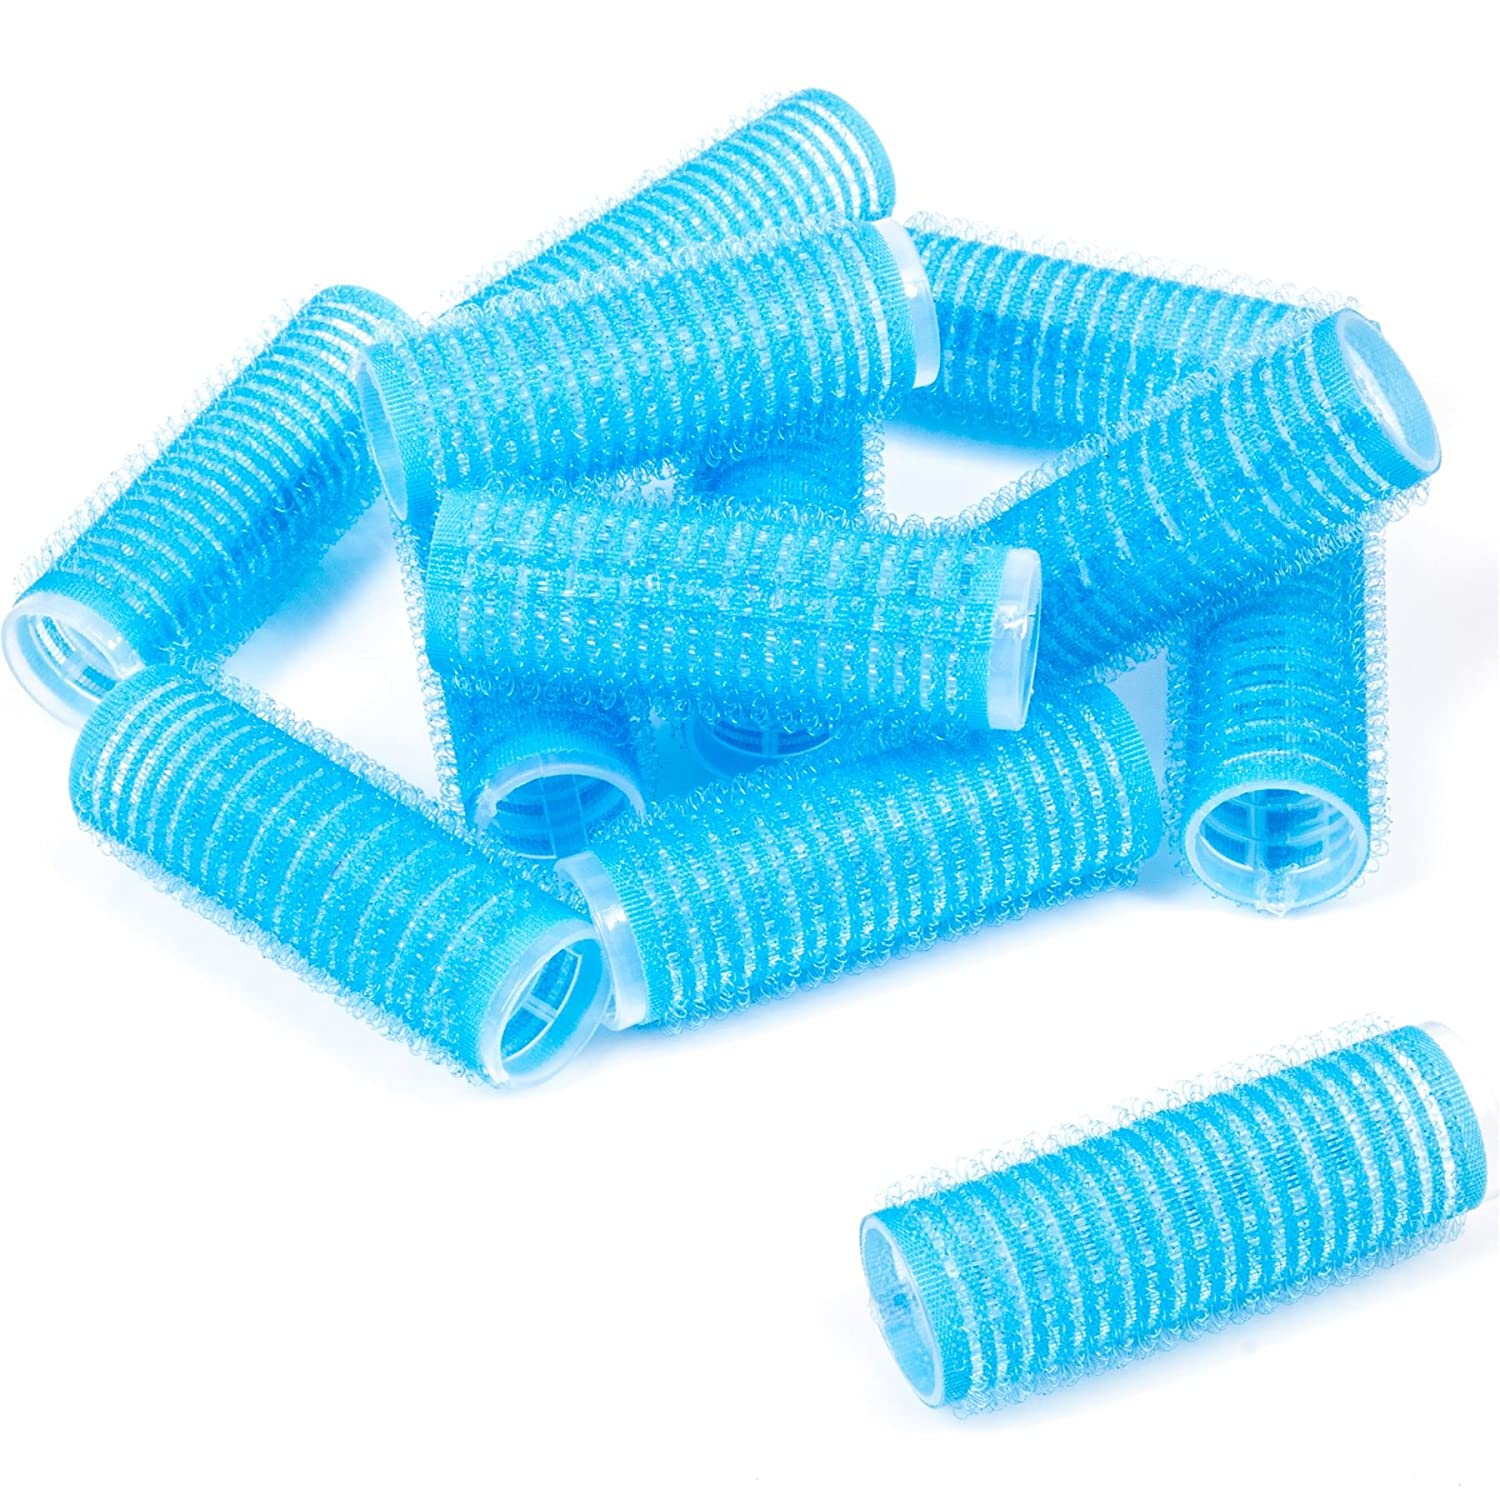 2 Packs Of 6 Blue Self Grip 20mm Velcro Hair Rollers (12 Total) White Hinge